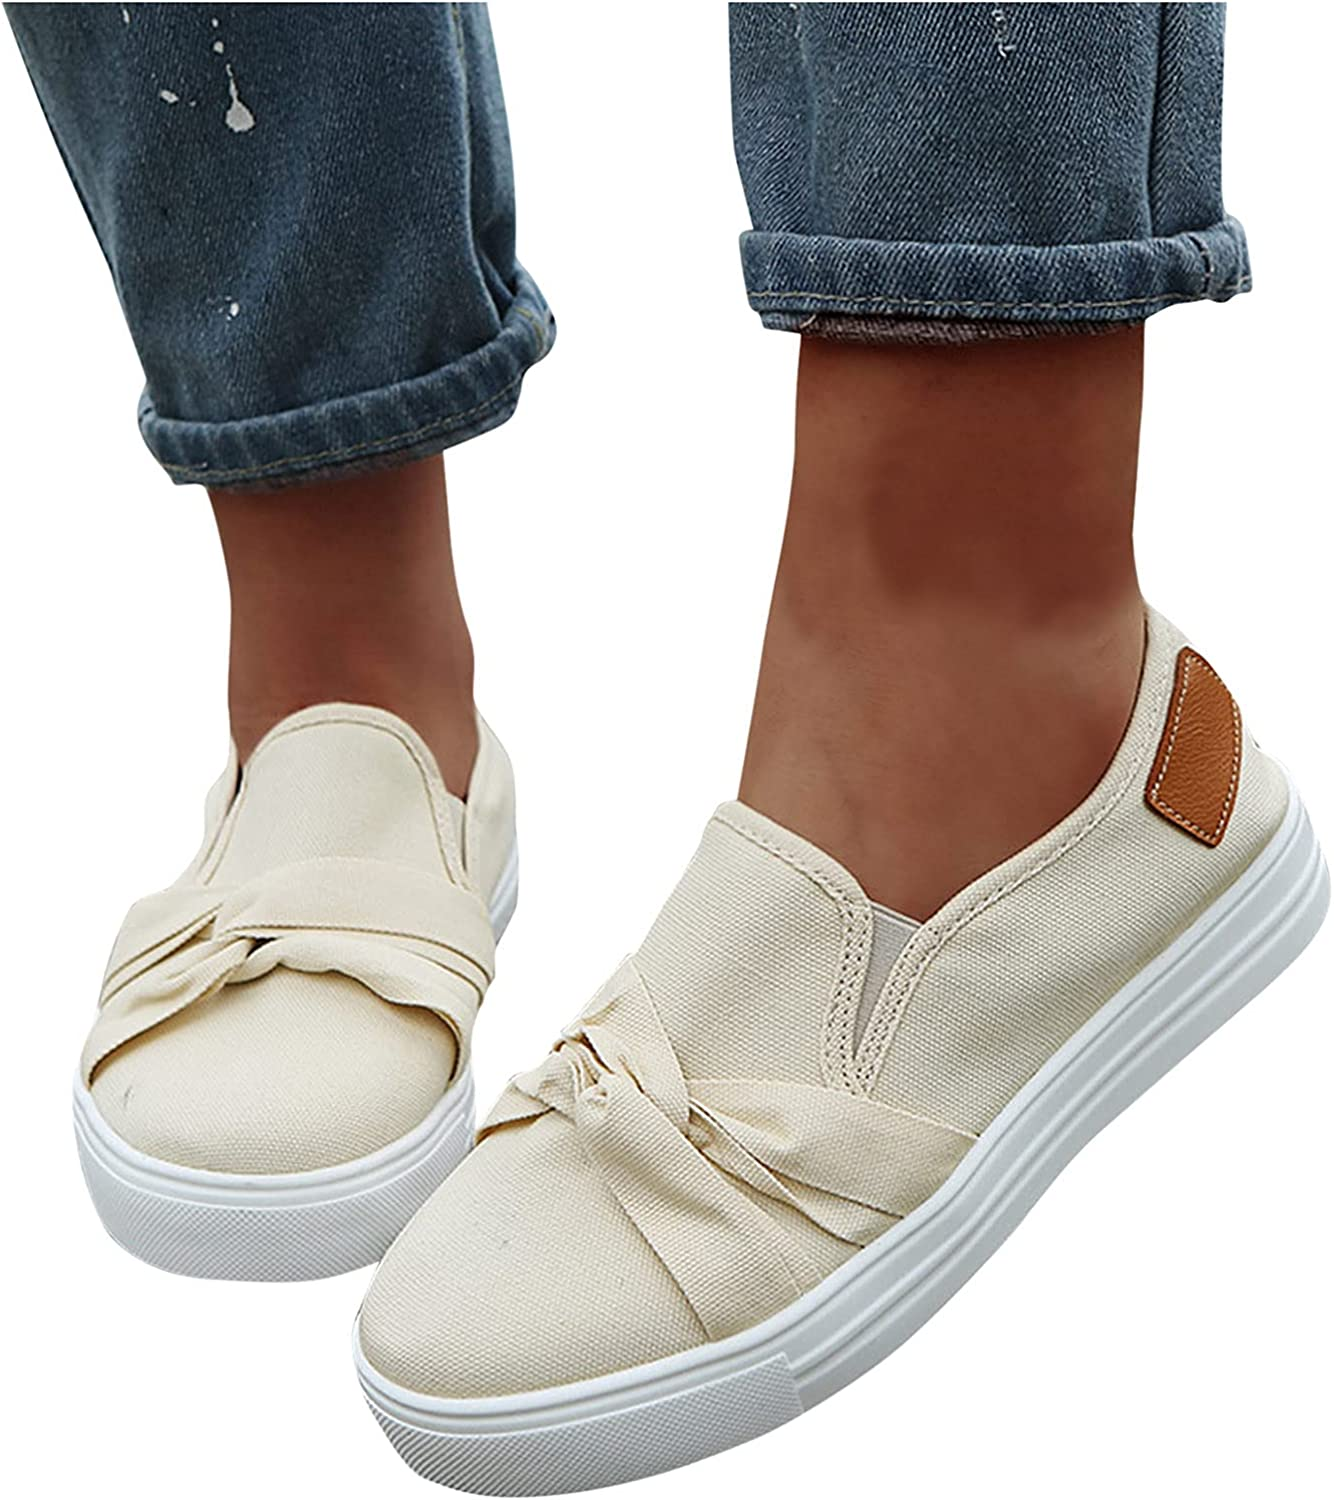 Walking Shoes for Women,Slip On Casual Breathable Casual Bowknot